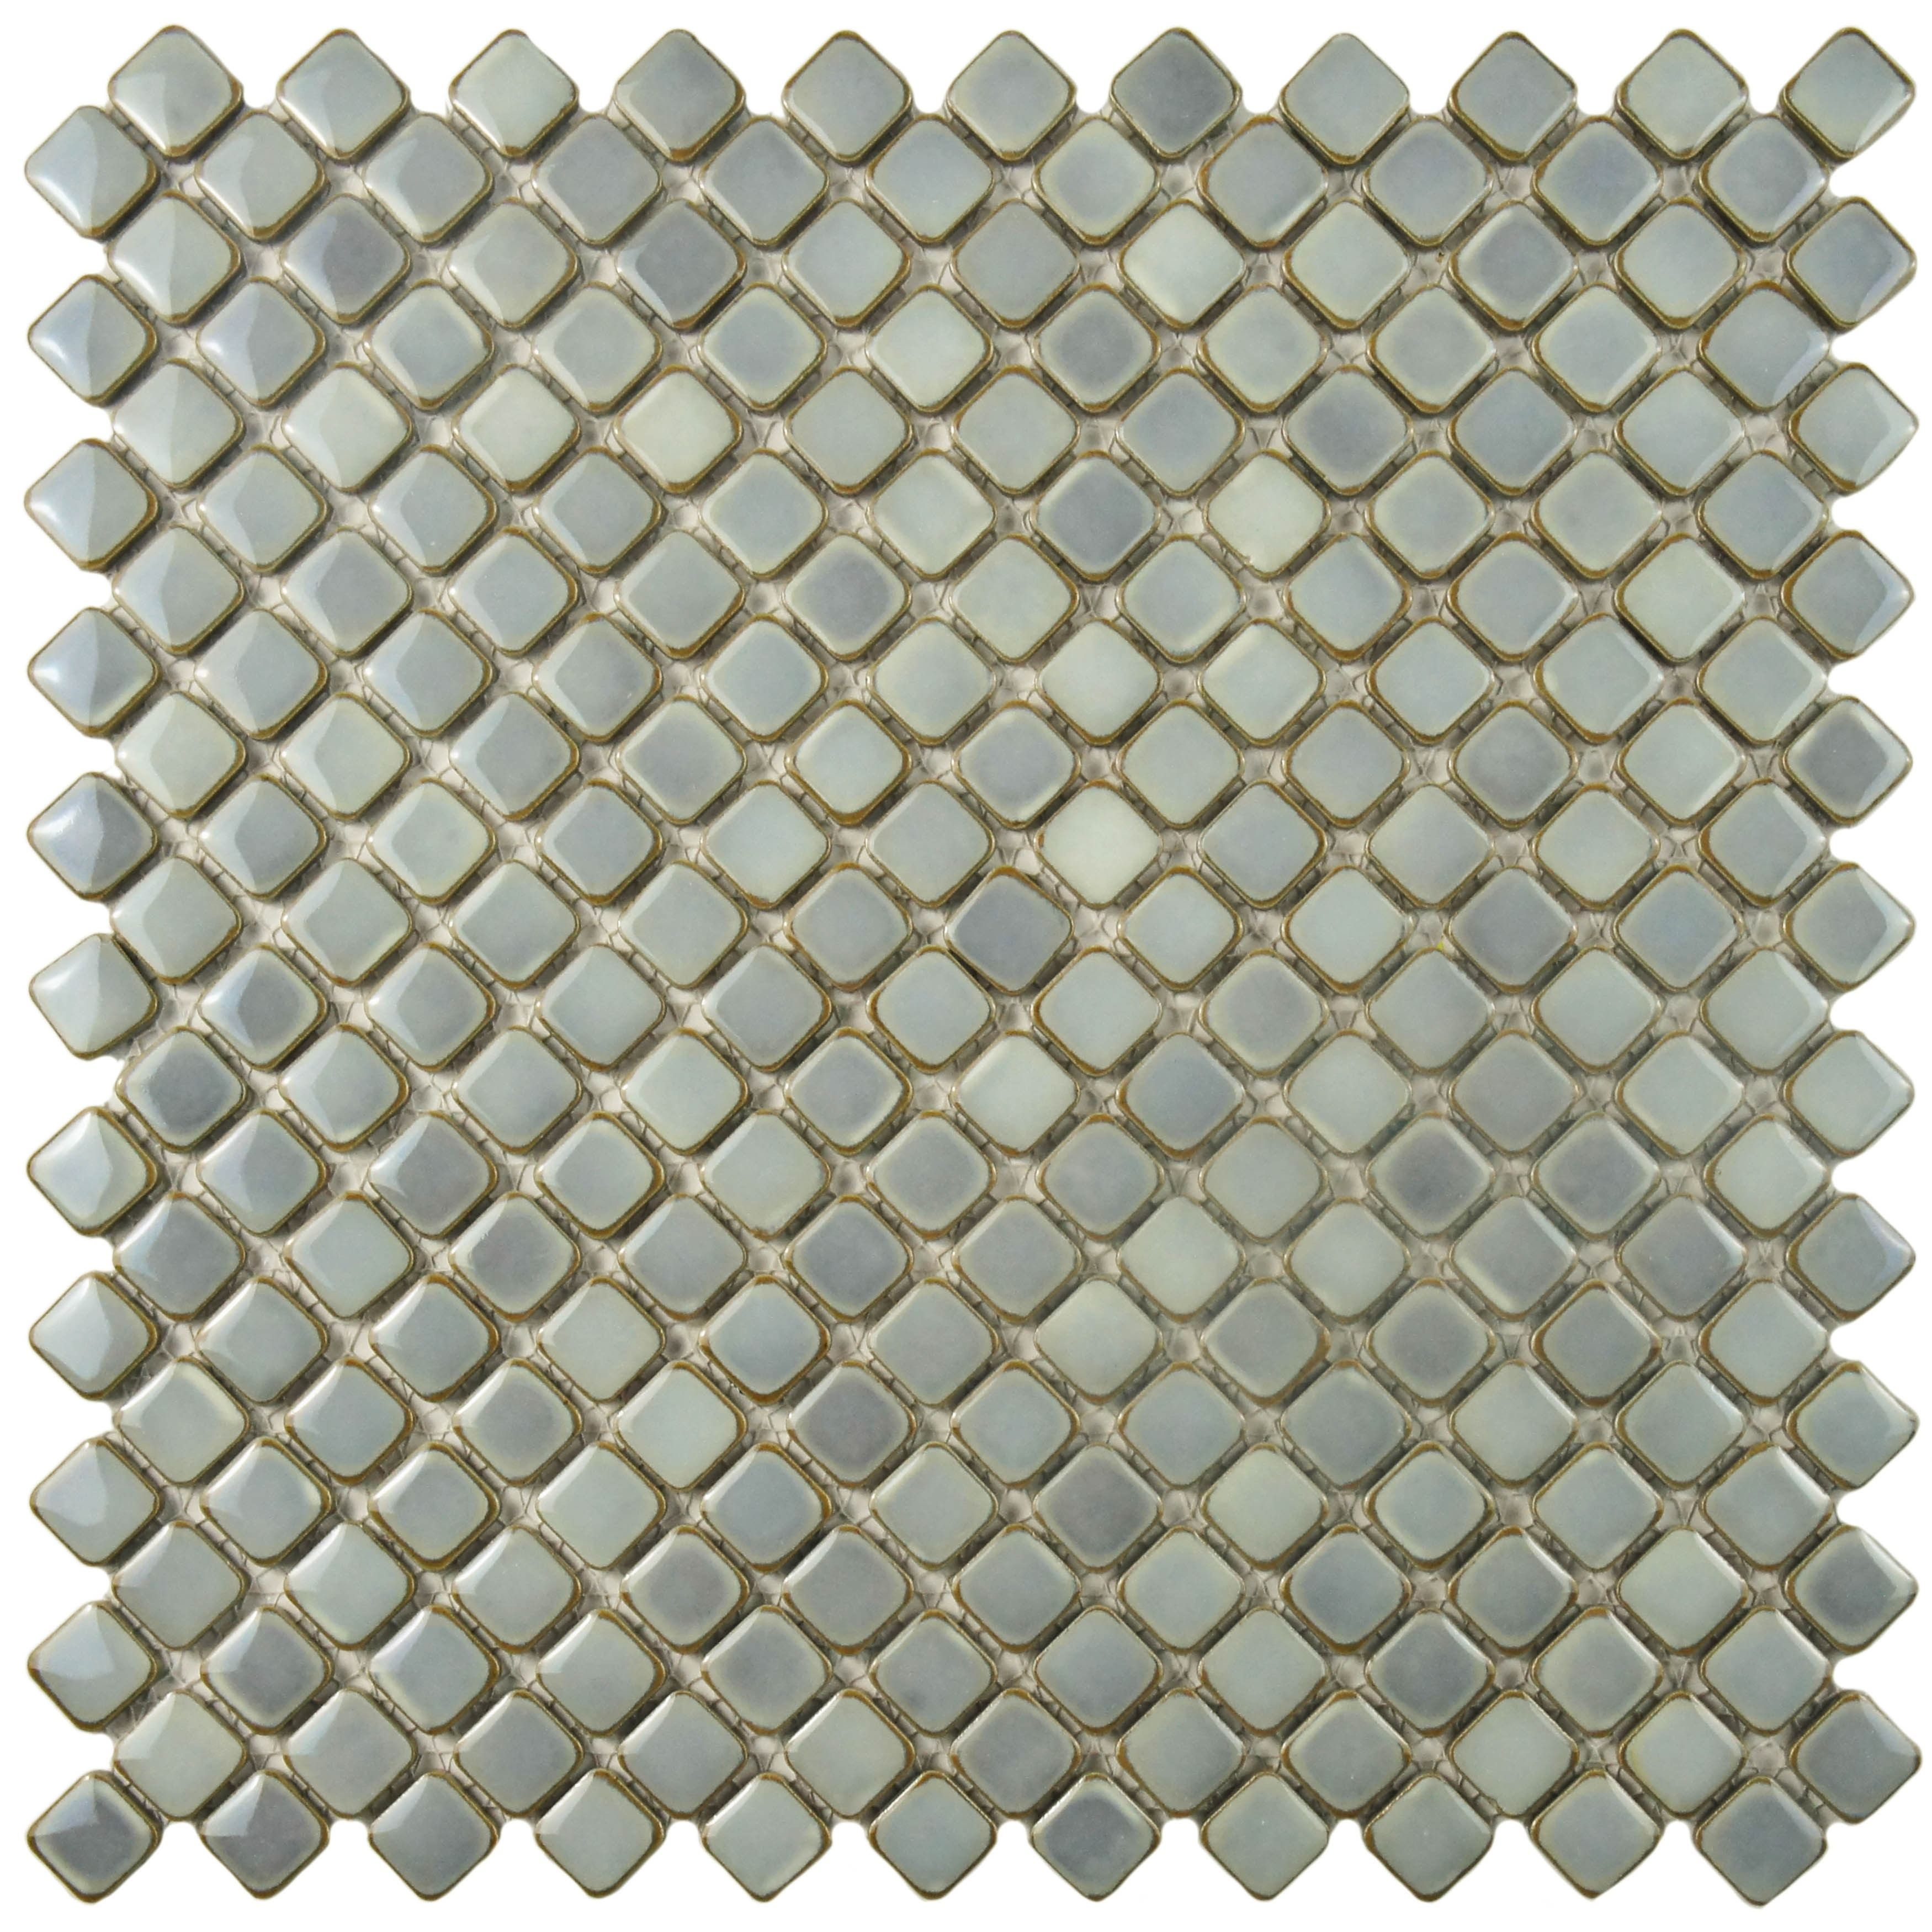 This somertile 12375 x 12375 inch jewel grey eye porcelain this somertile 12375 x 12375 inch jewel grey eye porcelain mosaic floor and wall tile dailygadgetfo Images